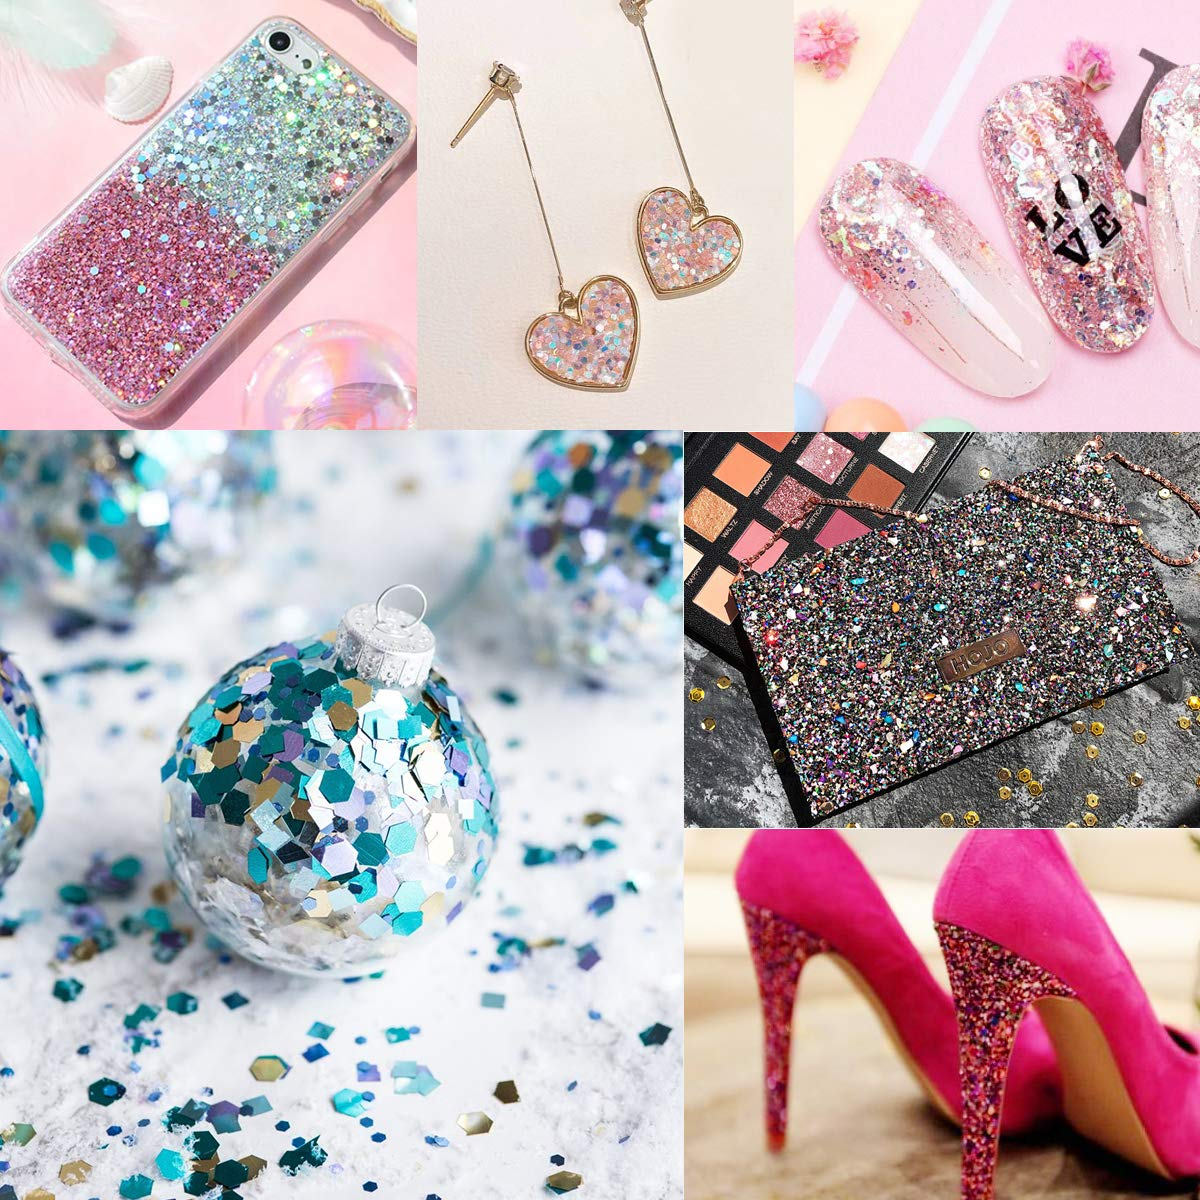 Face Glitter Body Glitter 6 Colors Nail Art Glitter Chunky Glitter with Long Lasting Gel for Cosmetic Party, 6 Boxes